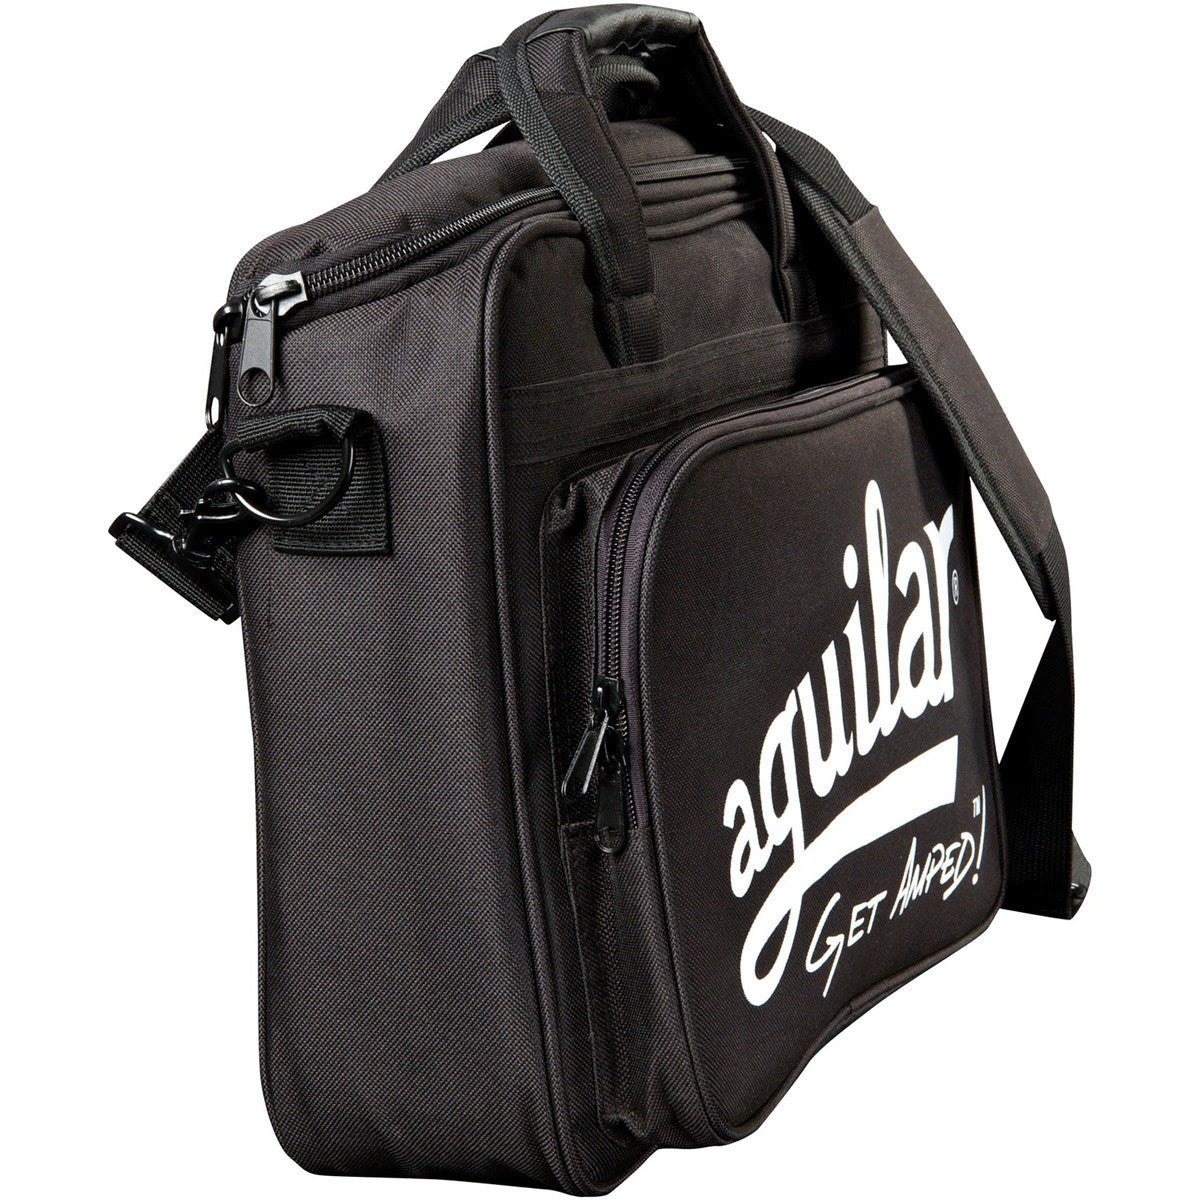 AGUILAR PADDED CARRY BAG FOR TONE HAMMER 350 ($49 USD)